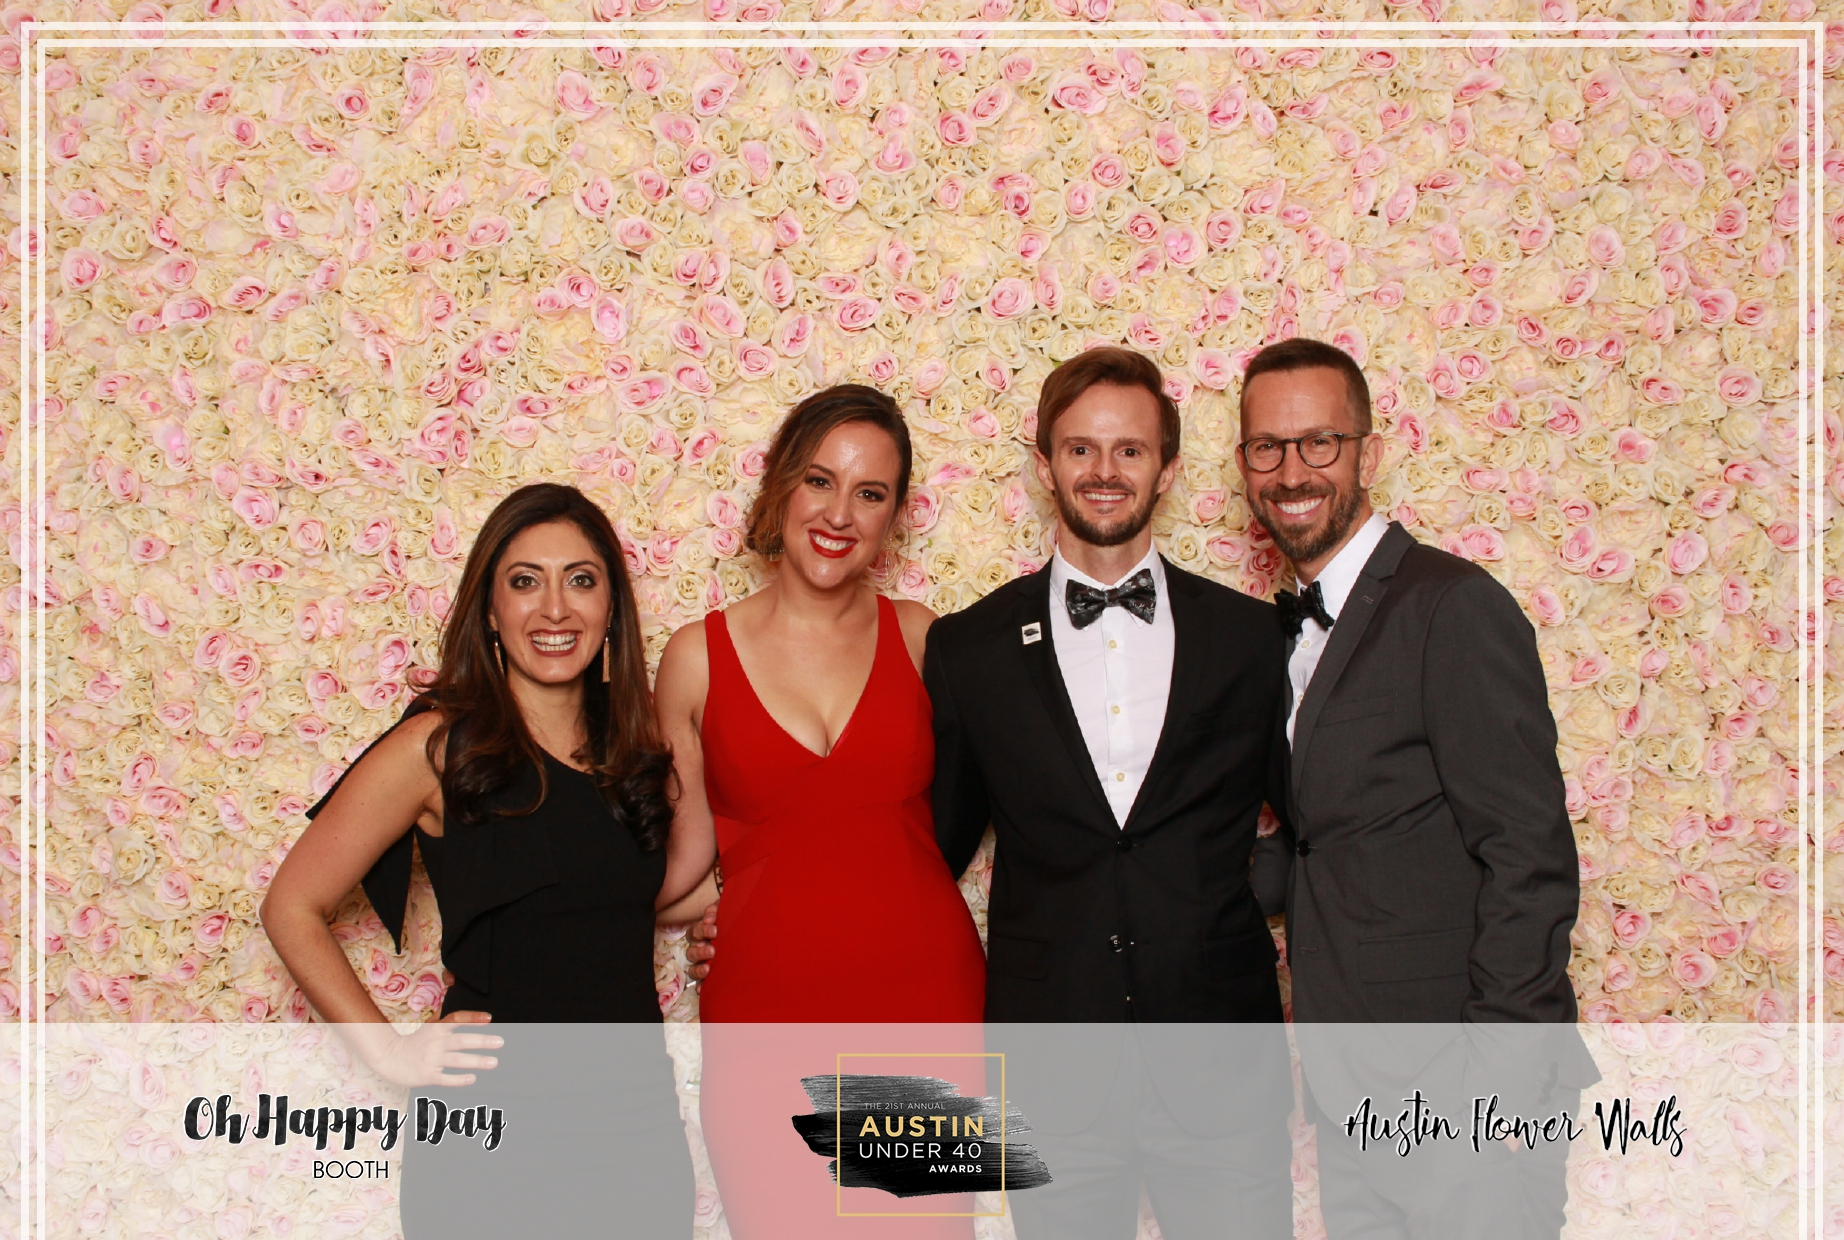 Oh Happy Day Booth - Austin Under 40-92.jpg